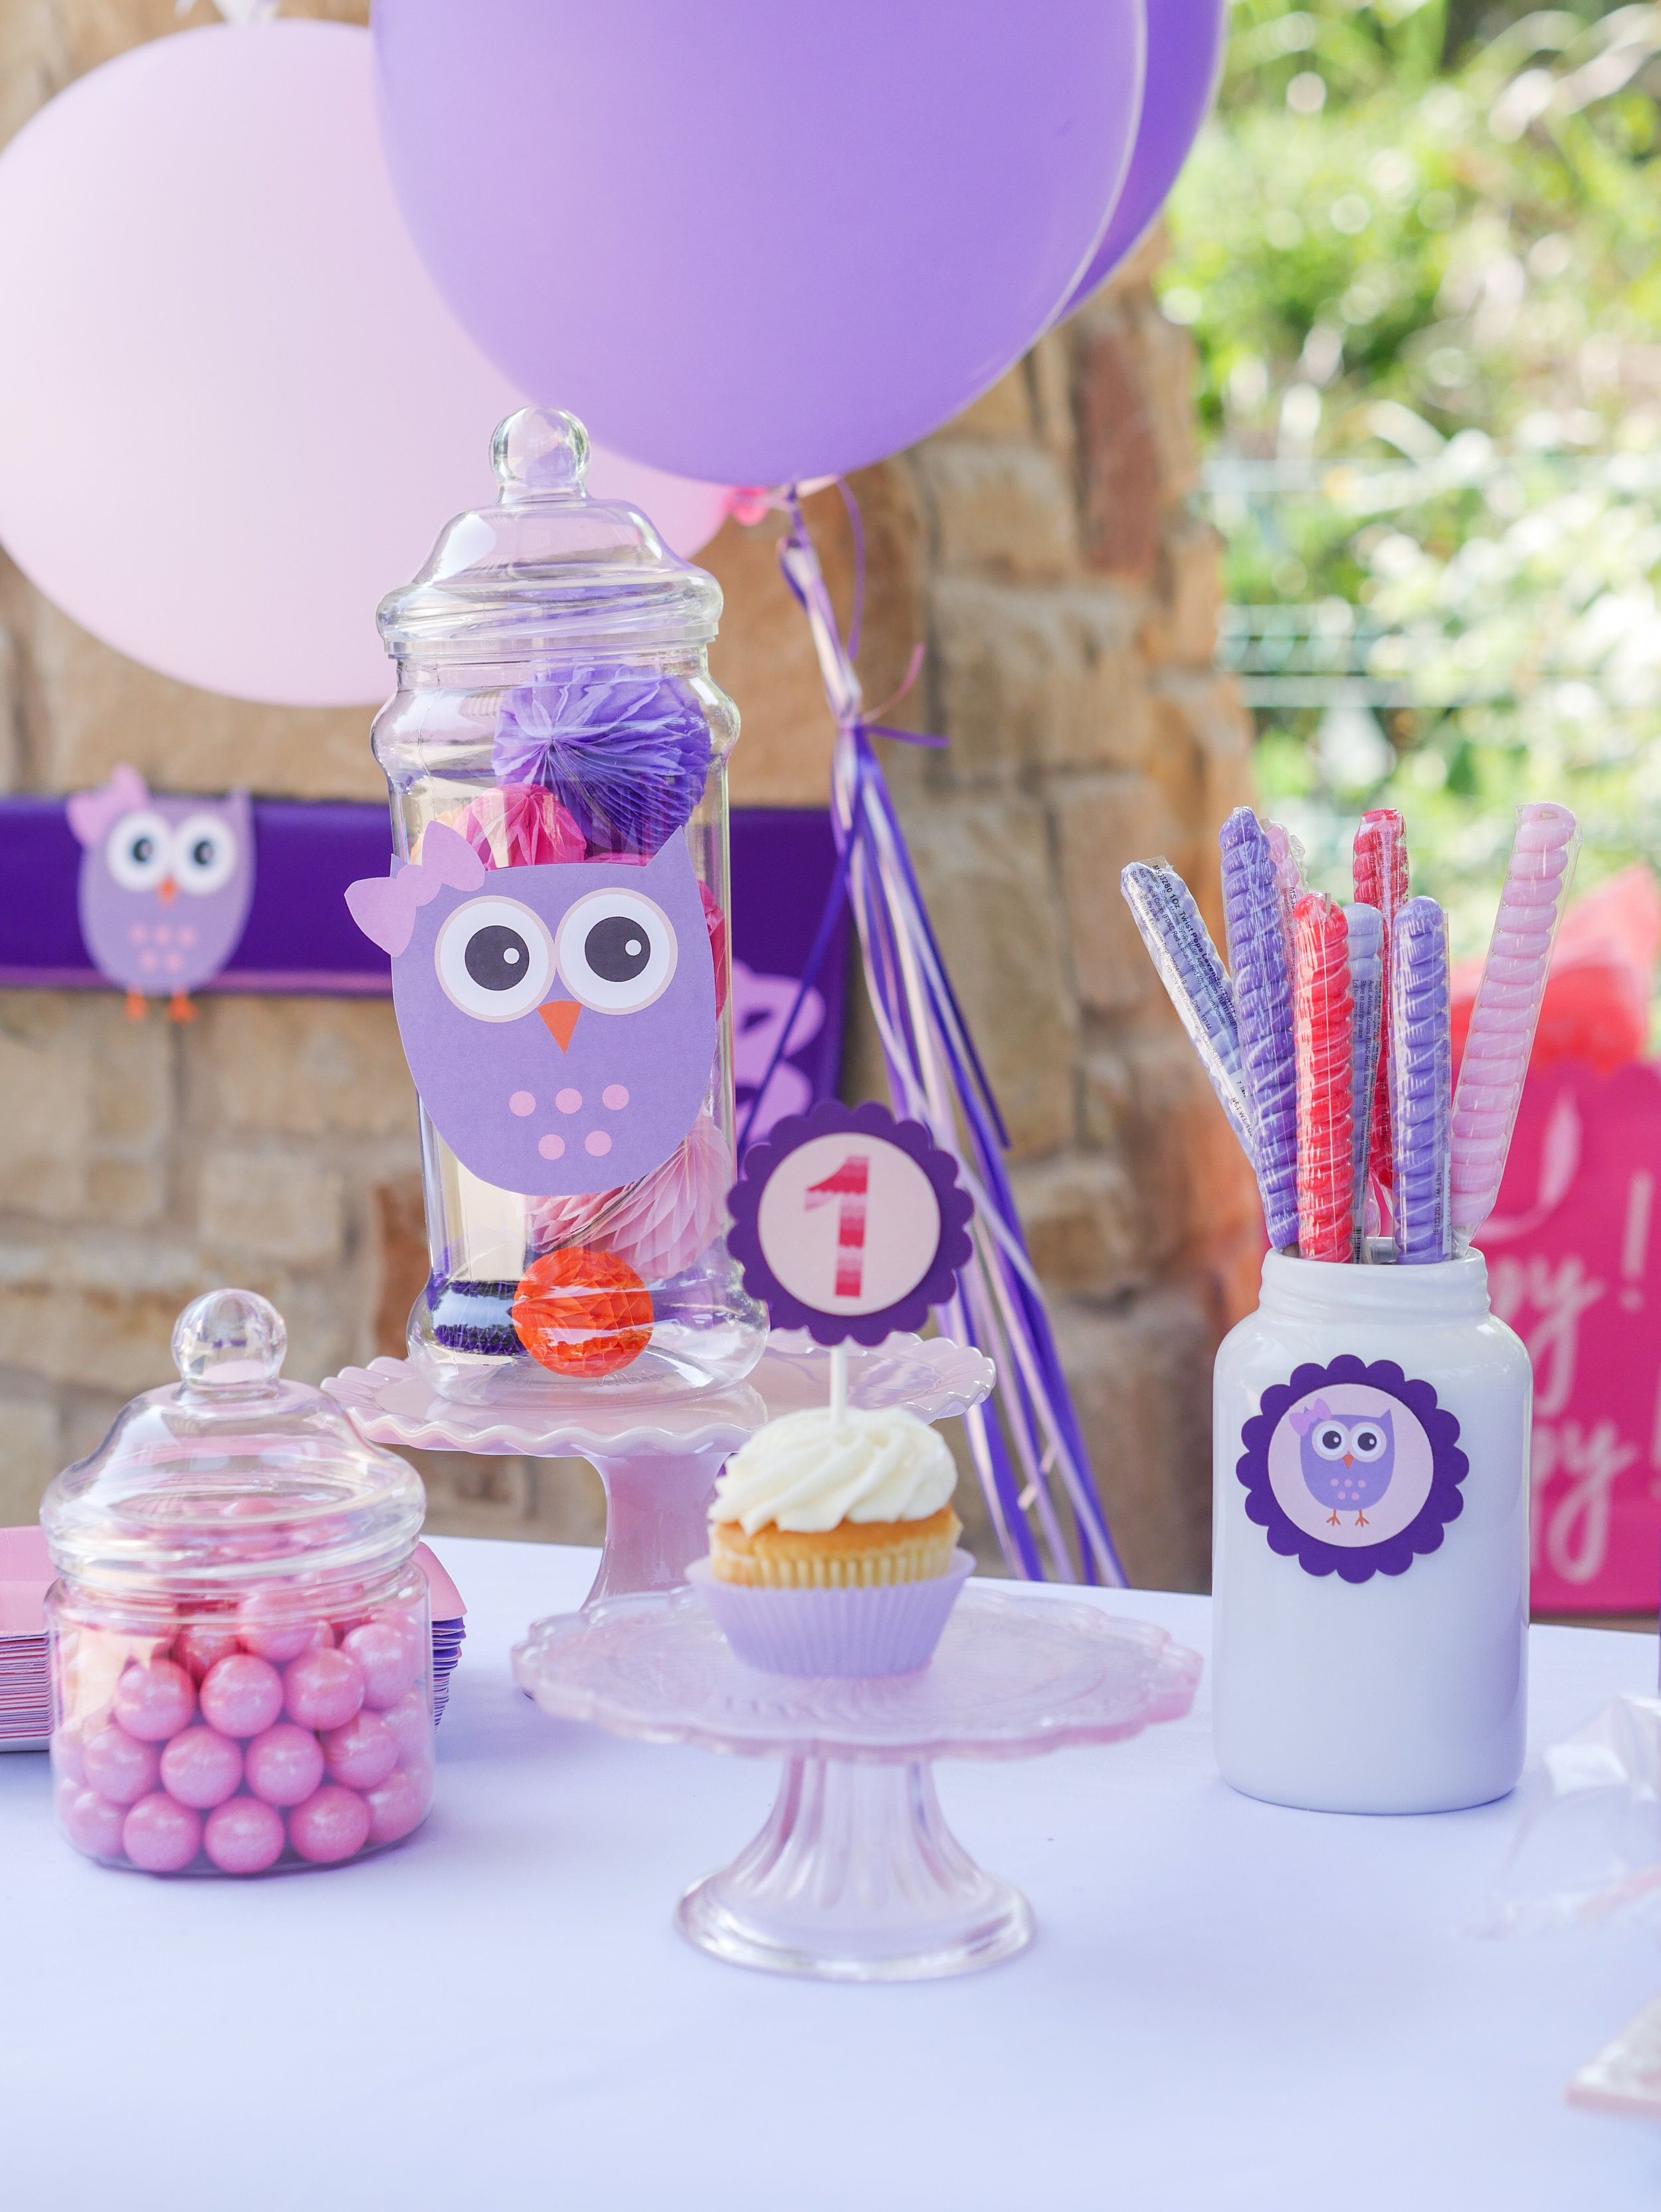 Fun dessert table details at this owl themed first birthday party in Austin, Texas. Click to see over 10 creative party ideas in the Owl First Birthday Party by party stylist Mint Event Design in Austin, TX #birthdayparty #partyideas #partyinspiration #owl #firstbirthday #partytreats #partygoods #partyfavors